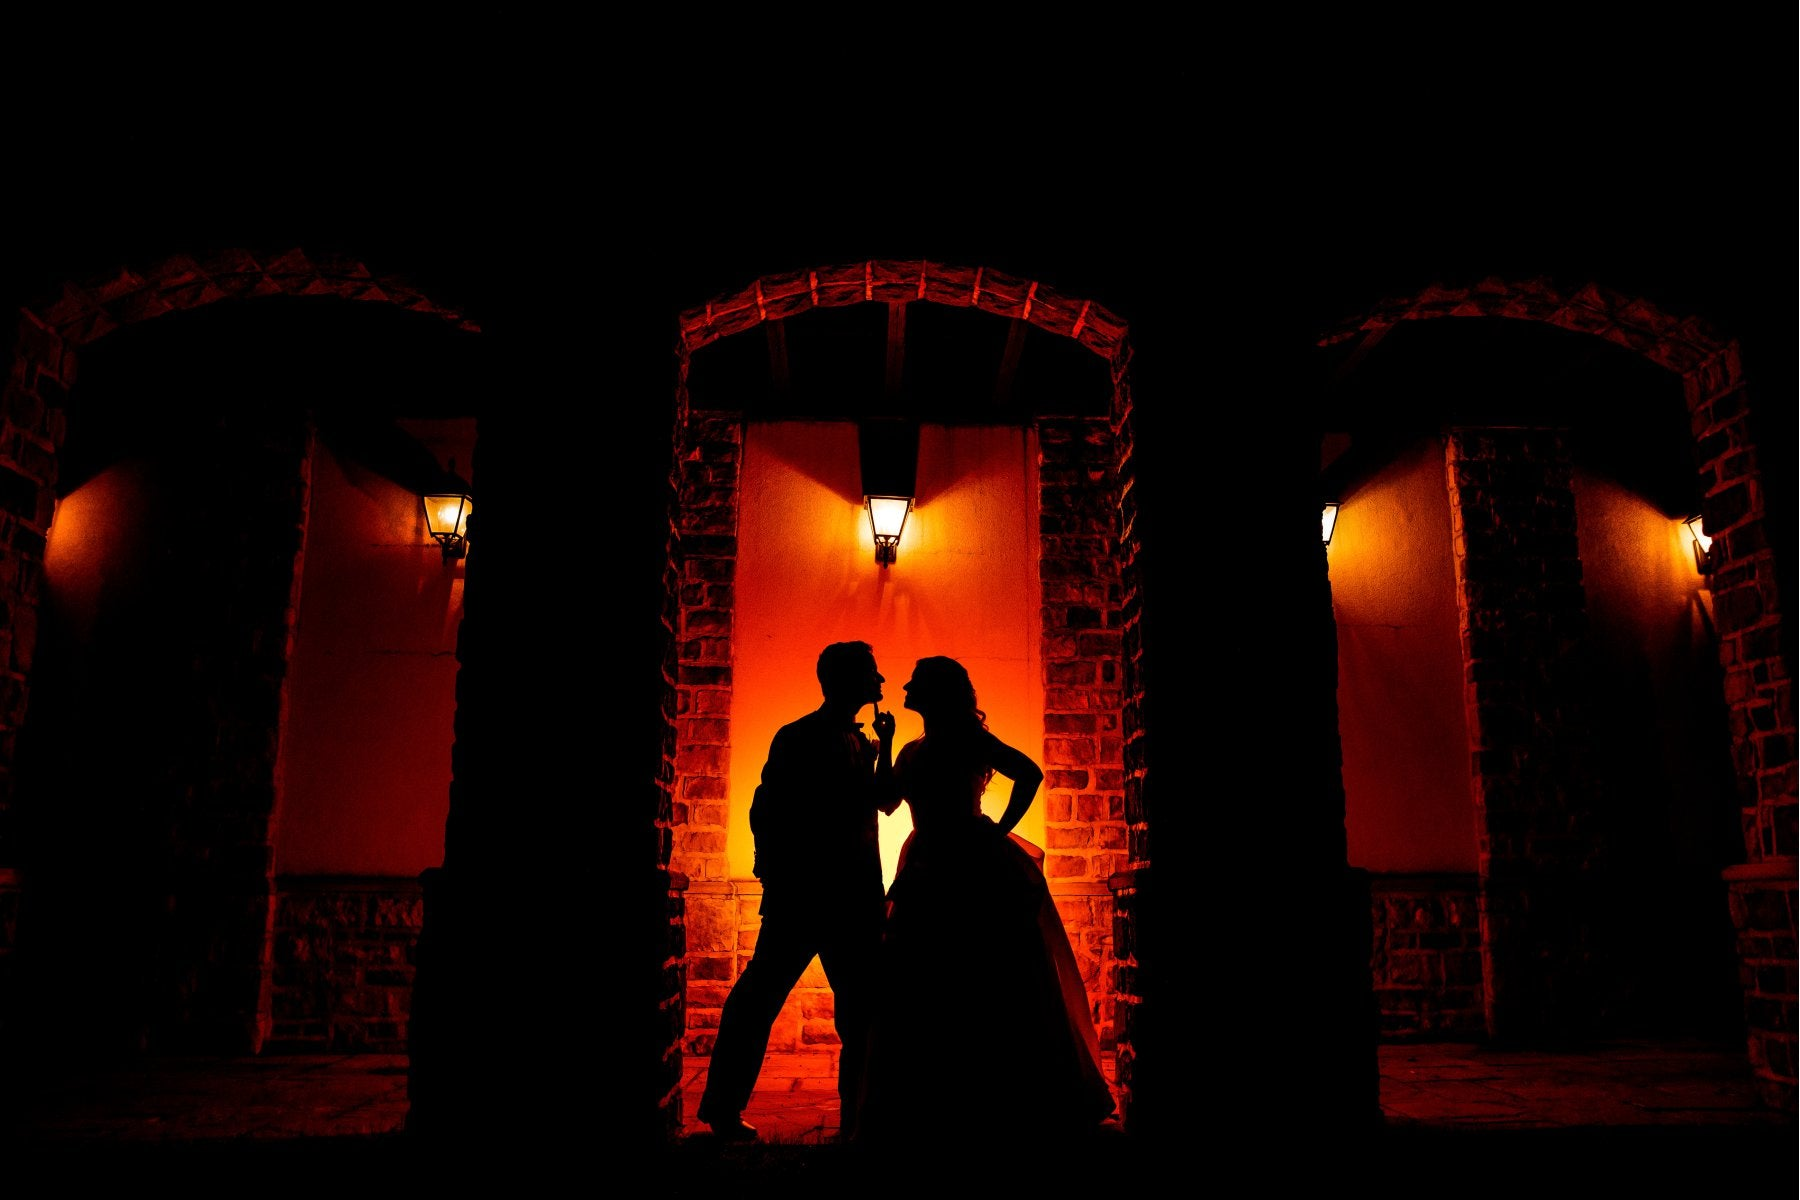 Silhouette of a couple posing in front of a red light source